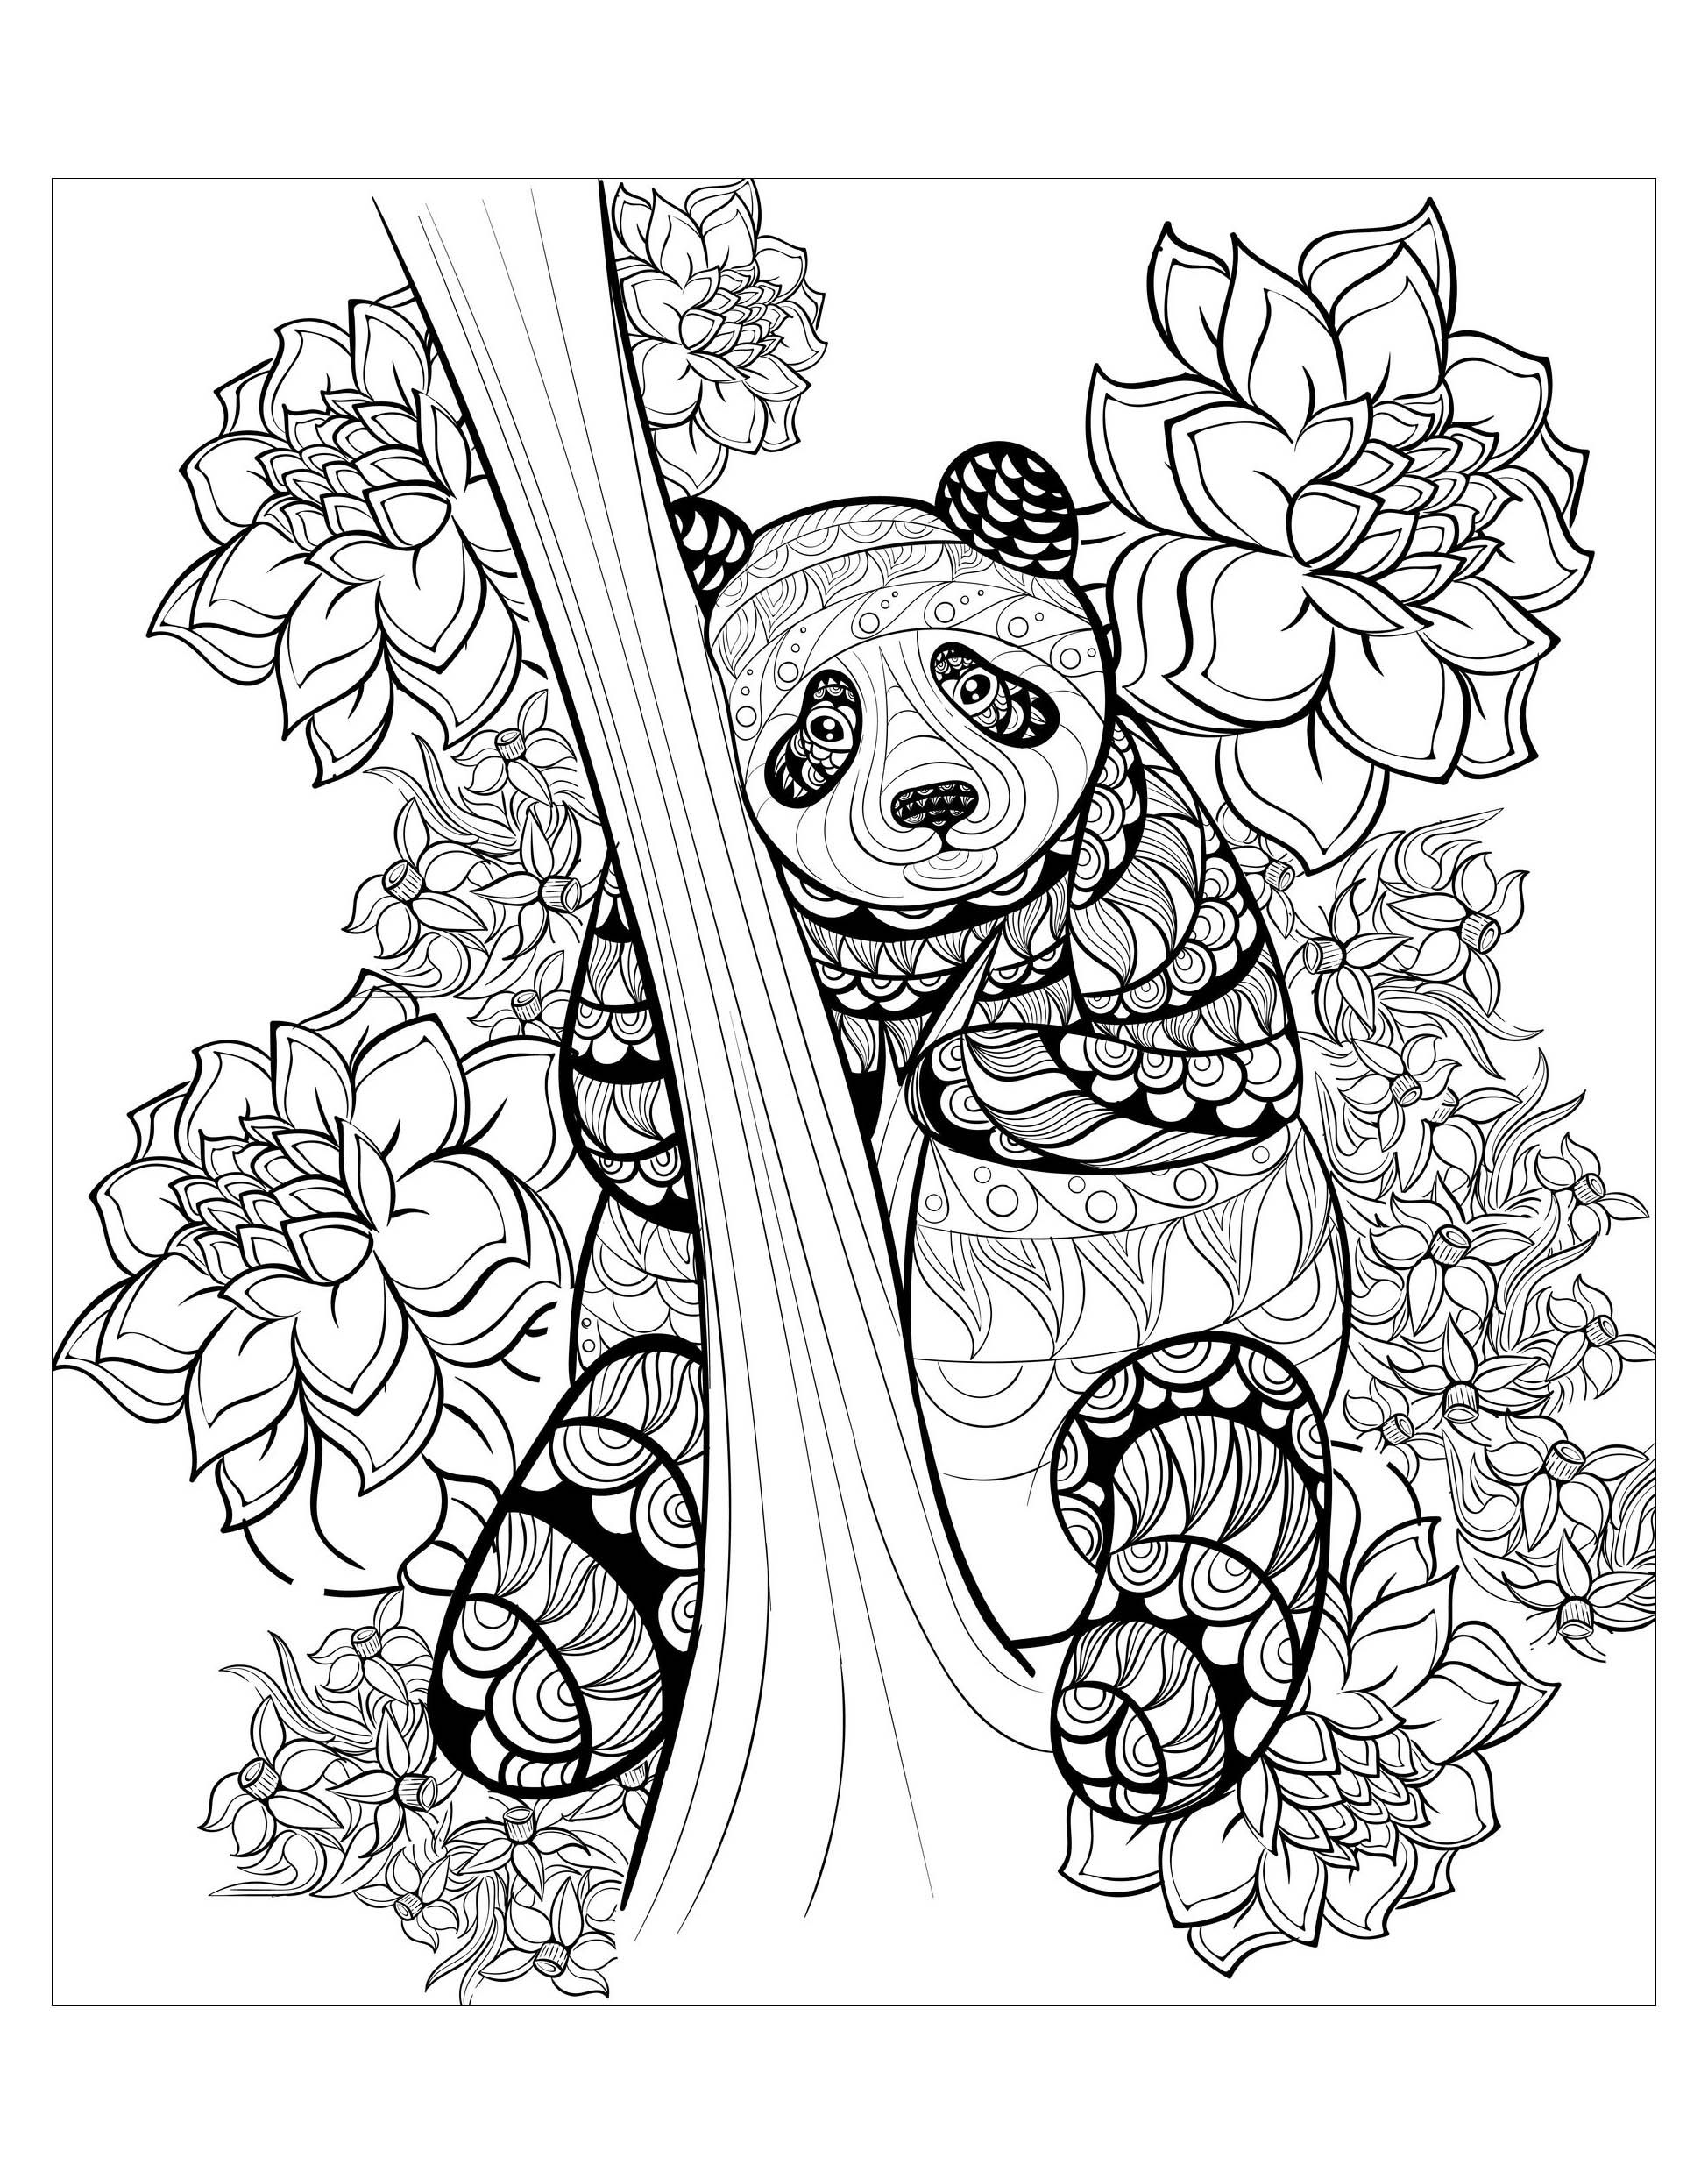 Panda By Alfadanz Hand Drawn Ink Pattern Of A Panda From The Gallery Pandas Artist Al In 2021 Animal Coloring Pages Mandala Coloring Pages Panda Coloring Pages